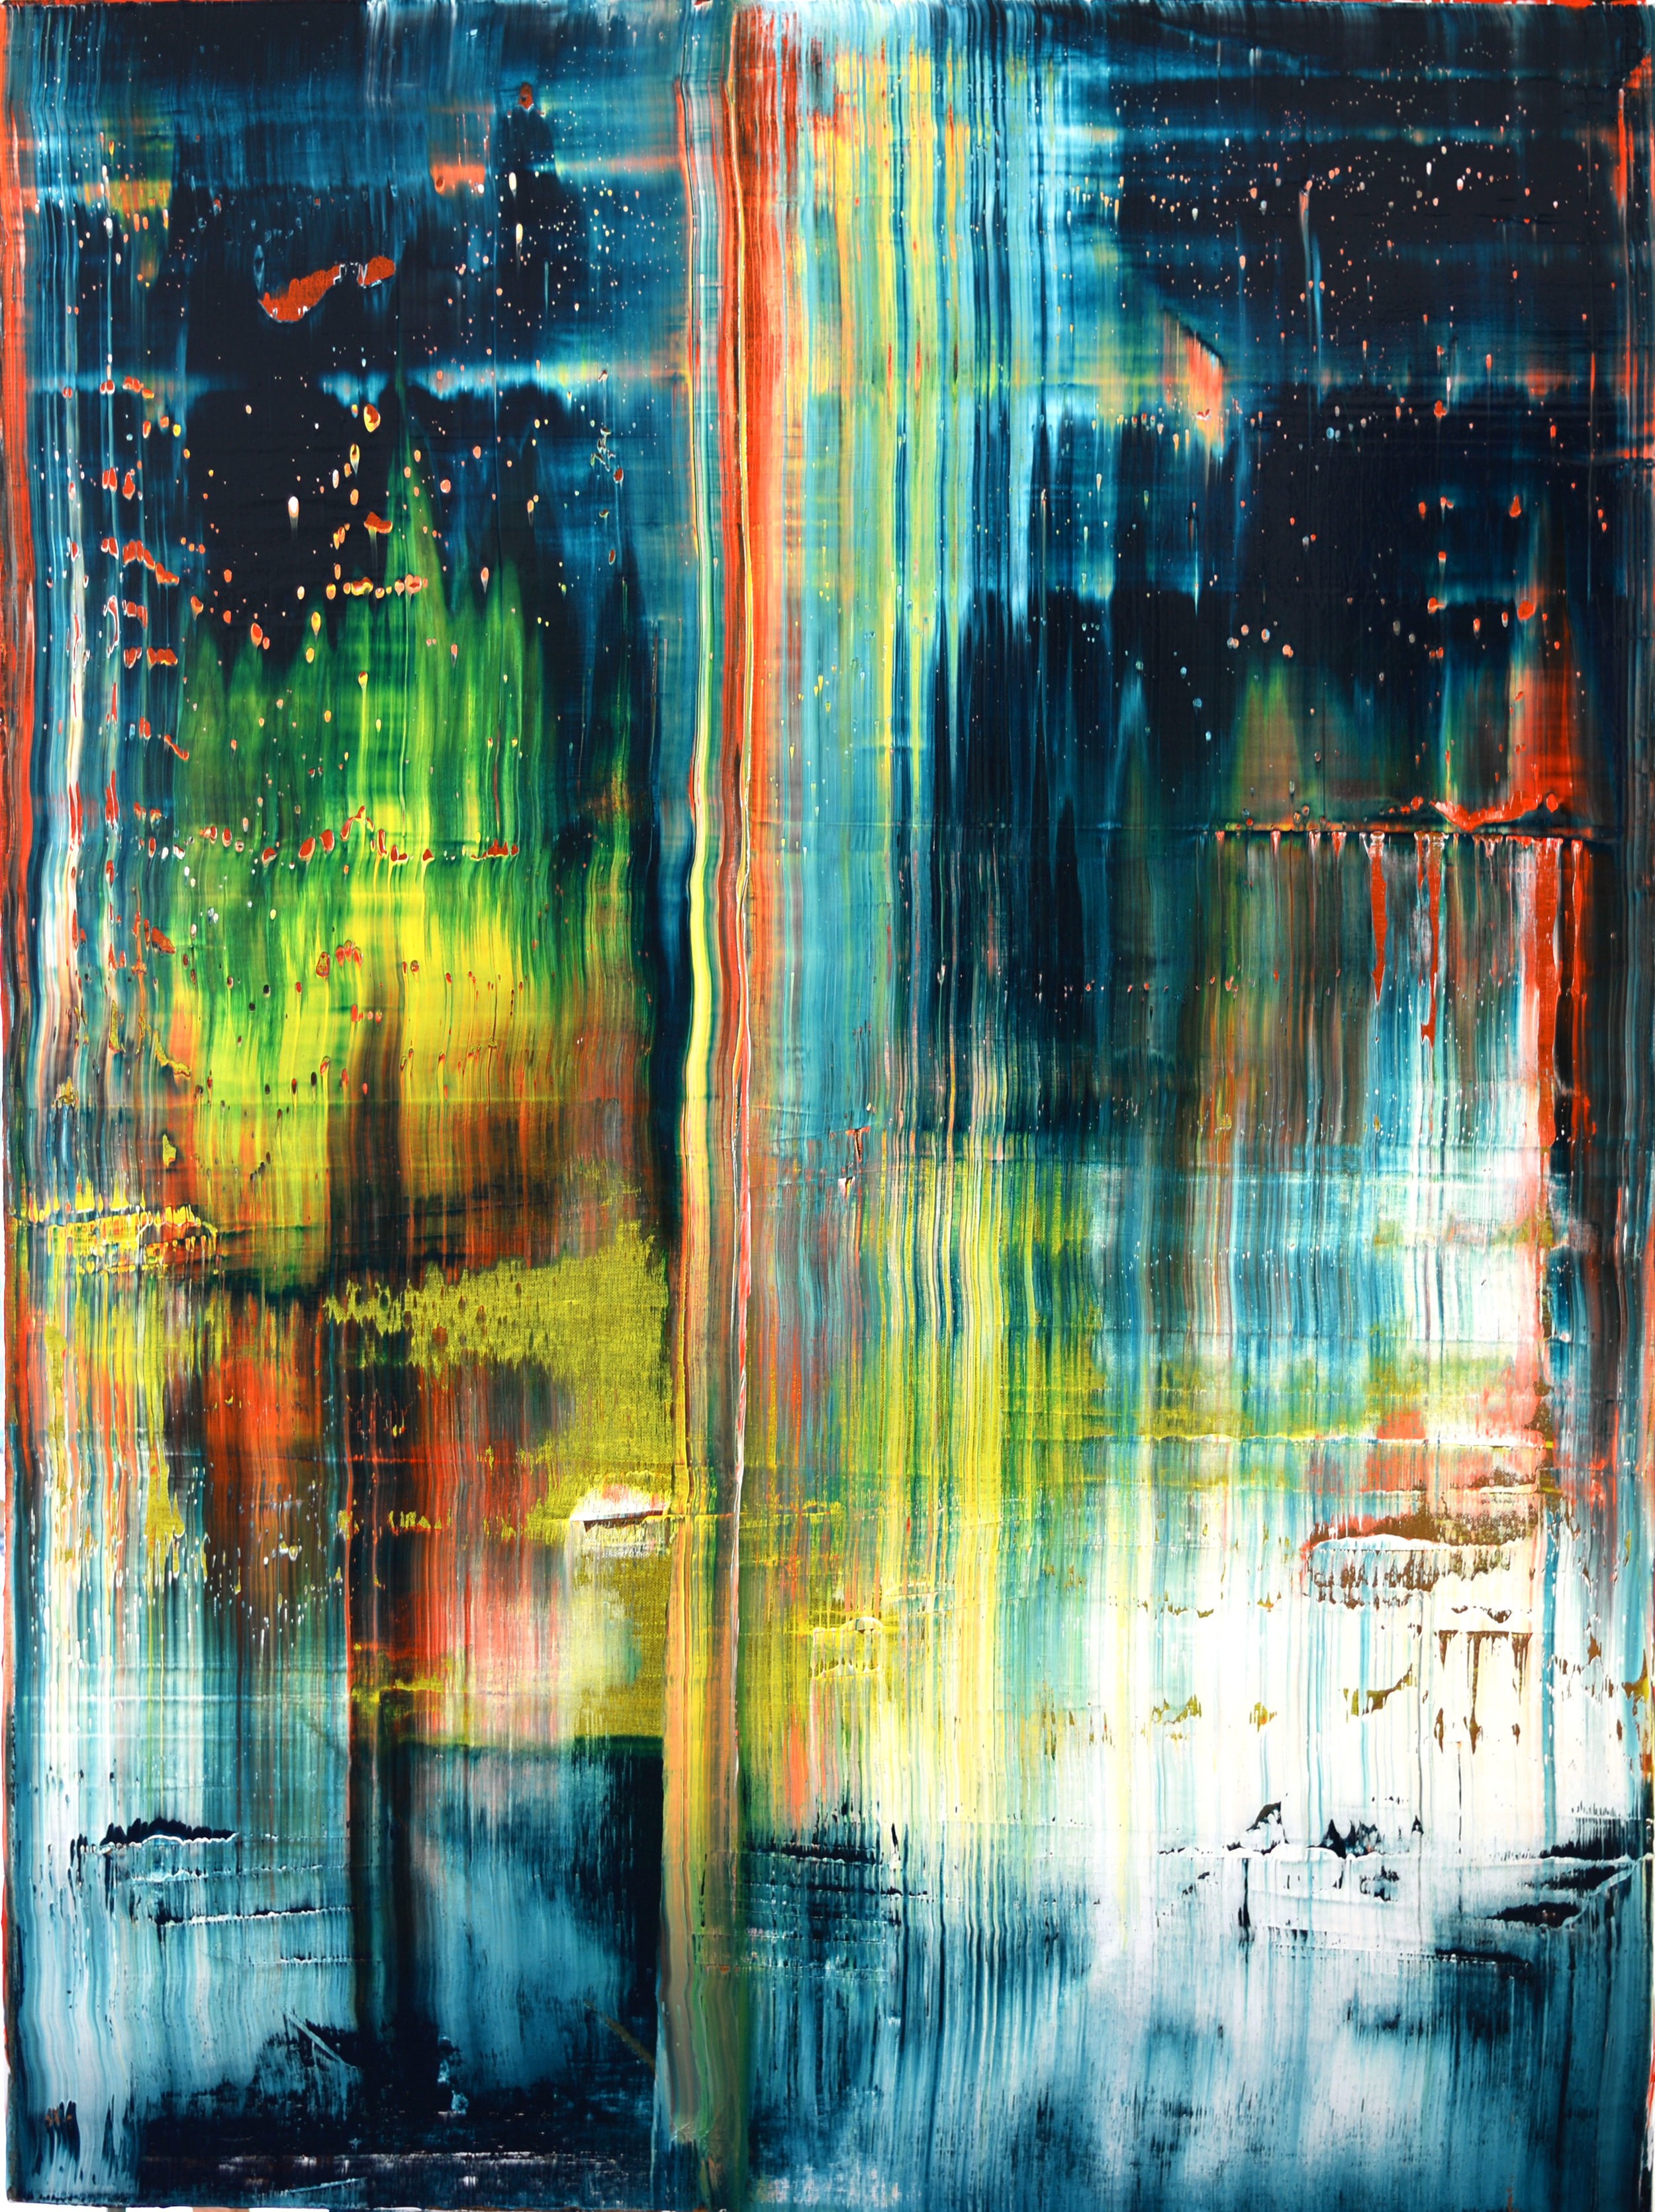 """Within. Without."" is an original, abstract oil painting created by Los Angeles based artist, Laura Viapiano."